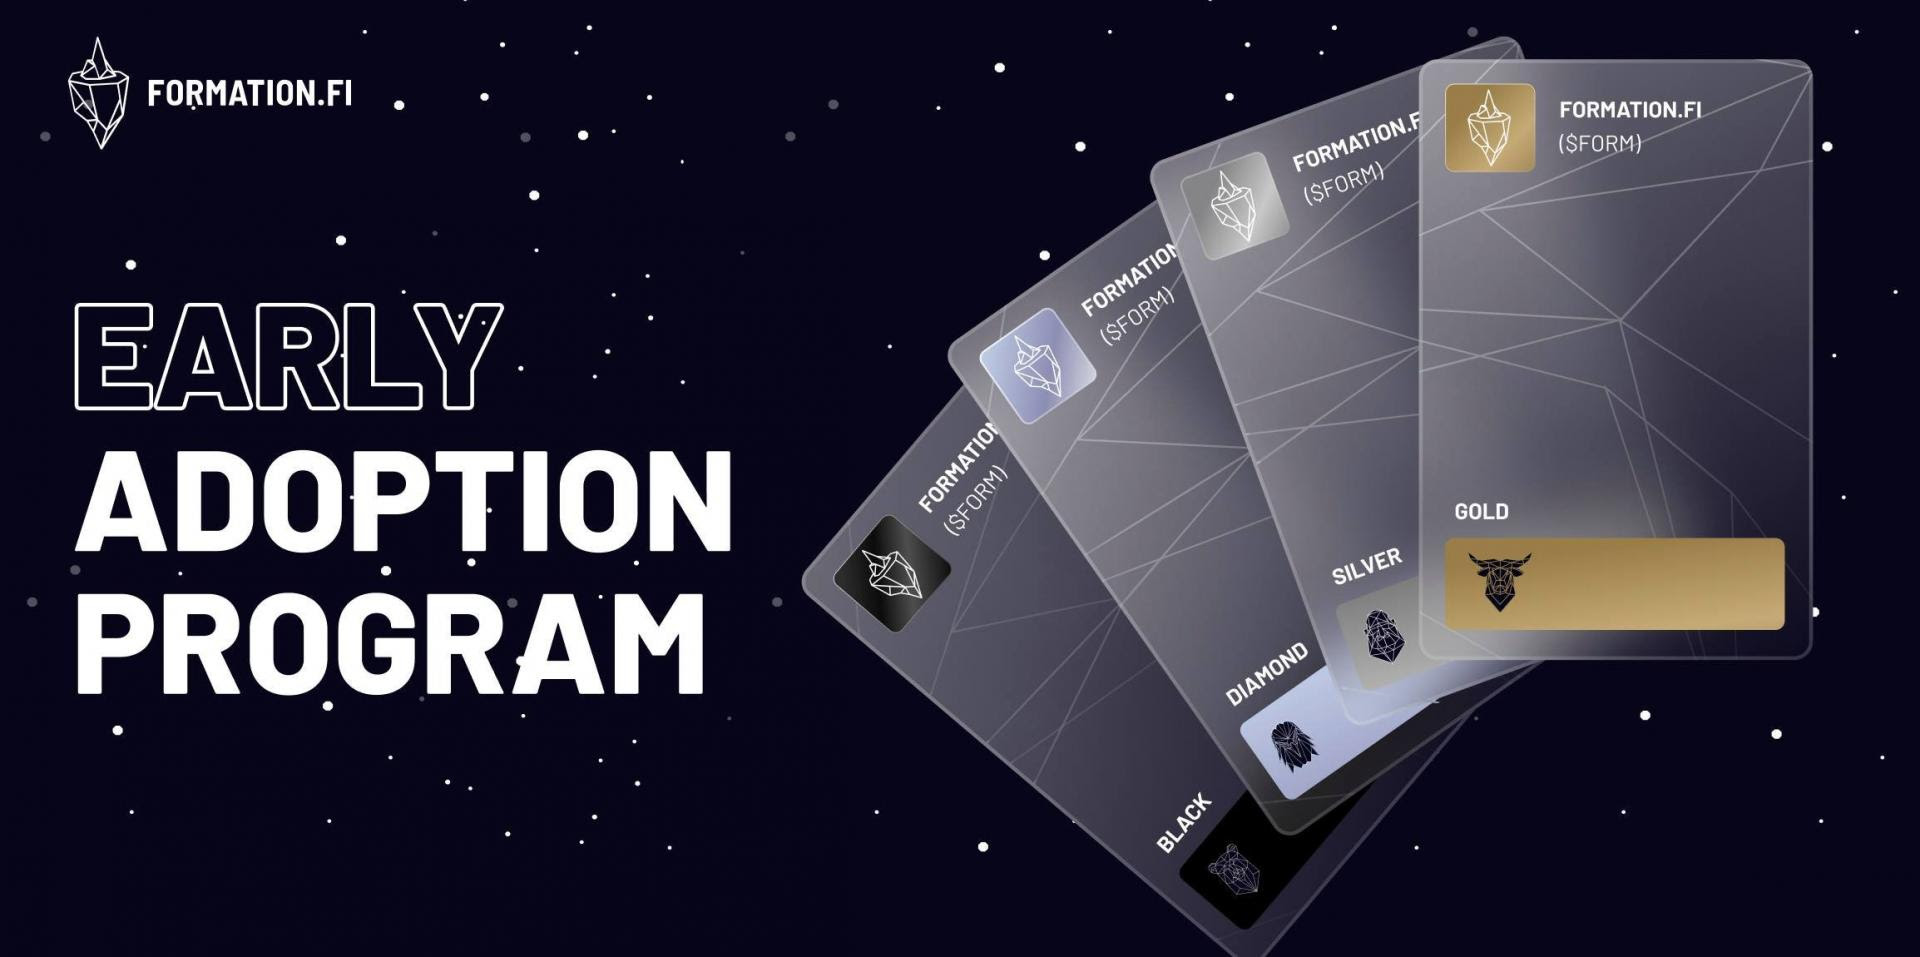 Formation Fi's Early Adoption Program Is Up And Running